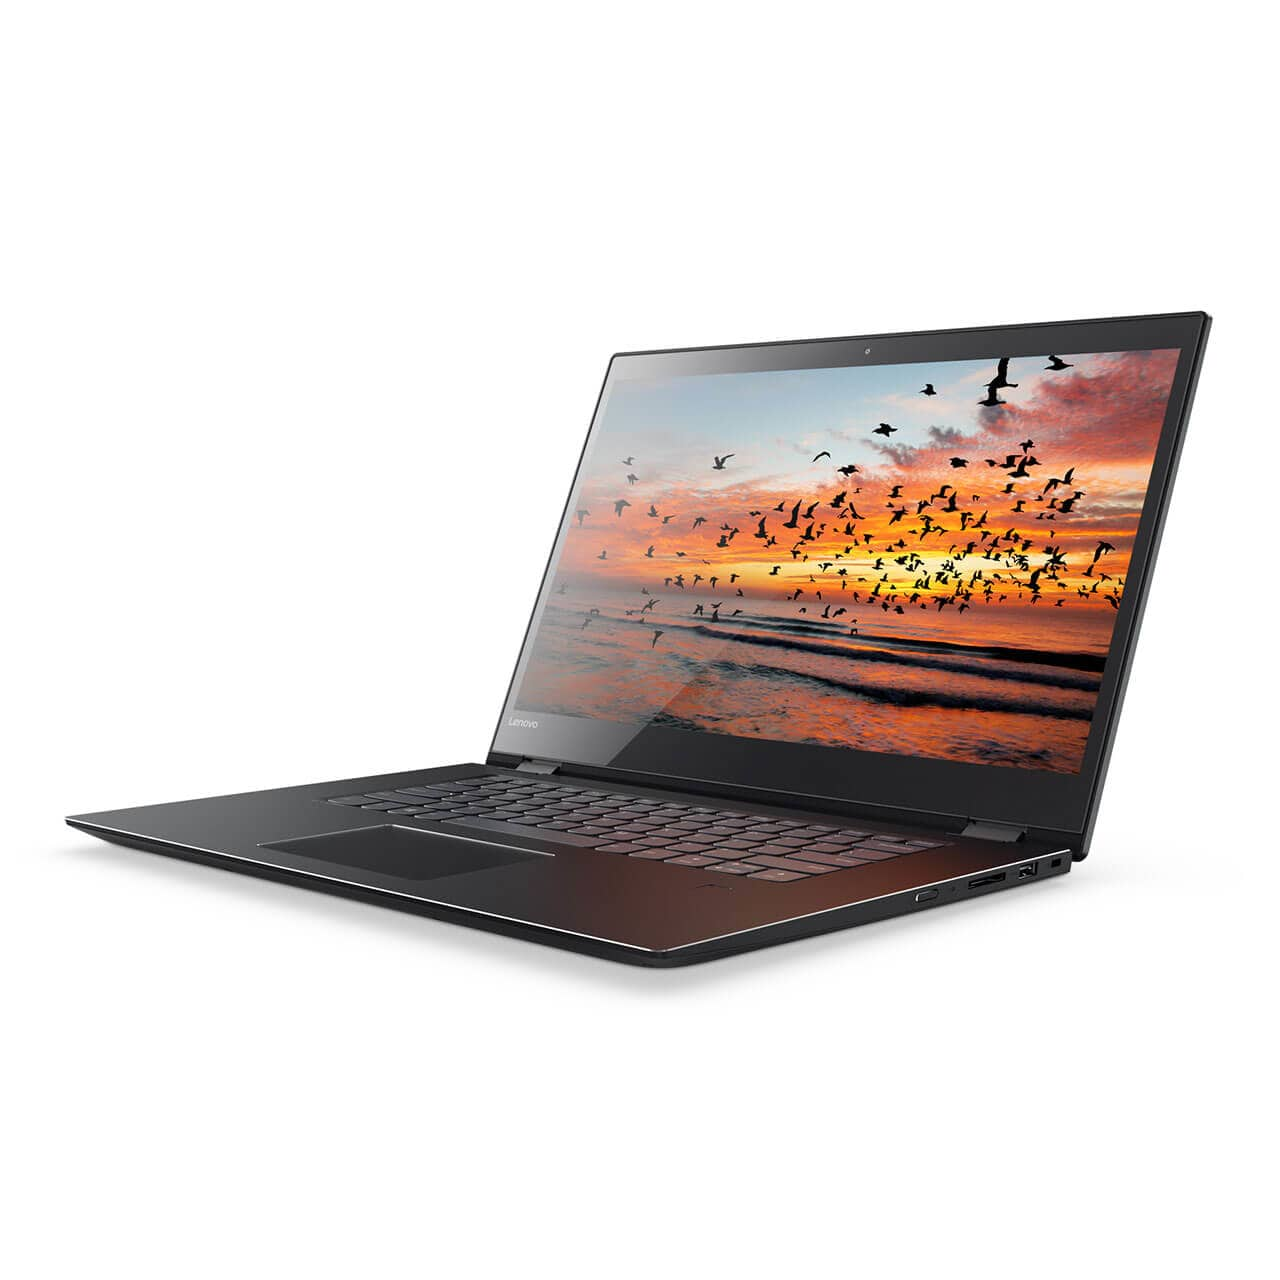 "Lenovo Flex 15, 15.6"", i5-8250U, 8 GB RAM, 500GB 5400 RPM, Win 10 Home 64 2"